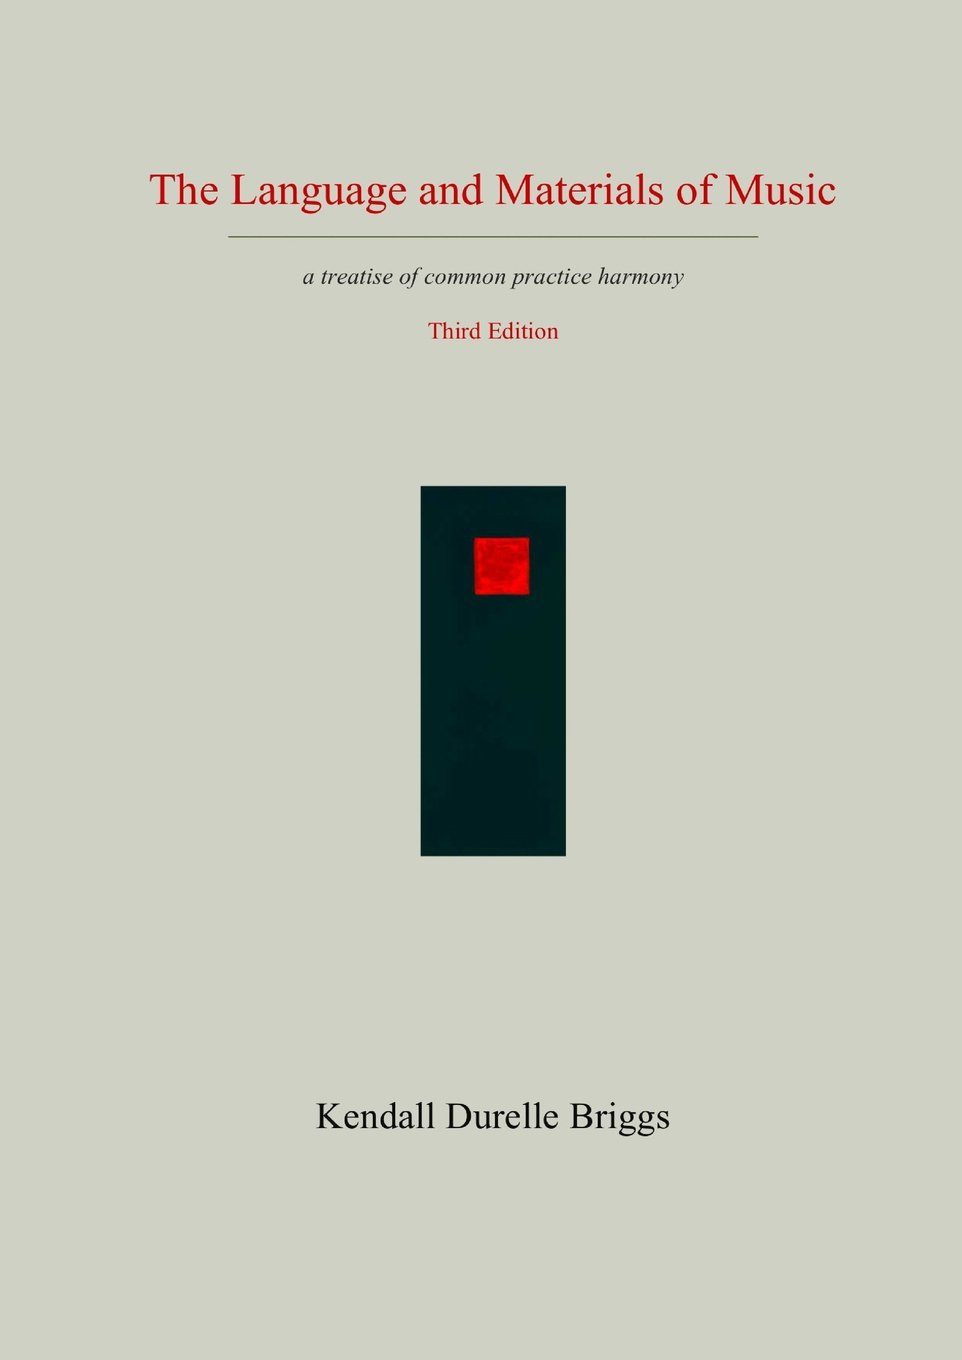 The Language and Materials of Music Third Edition